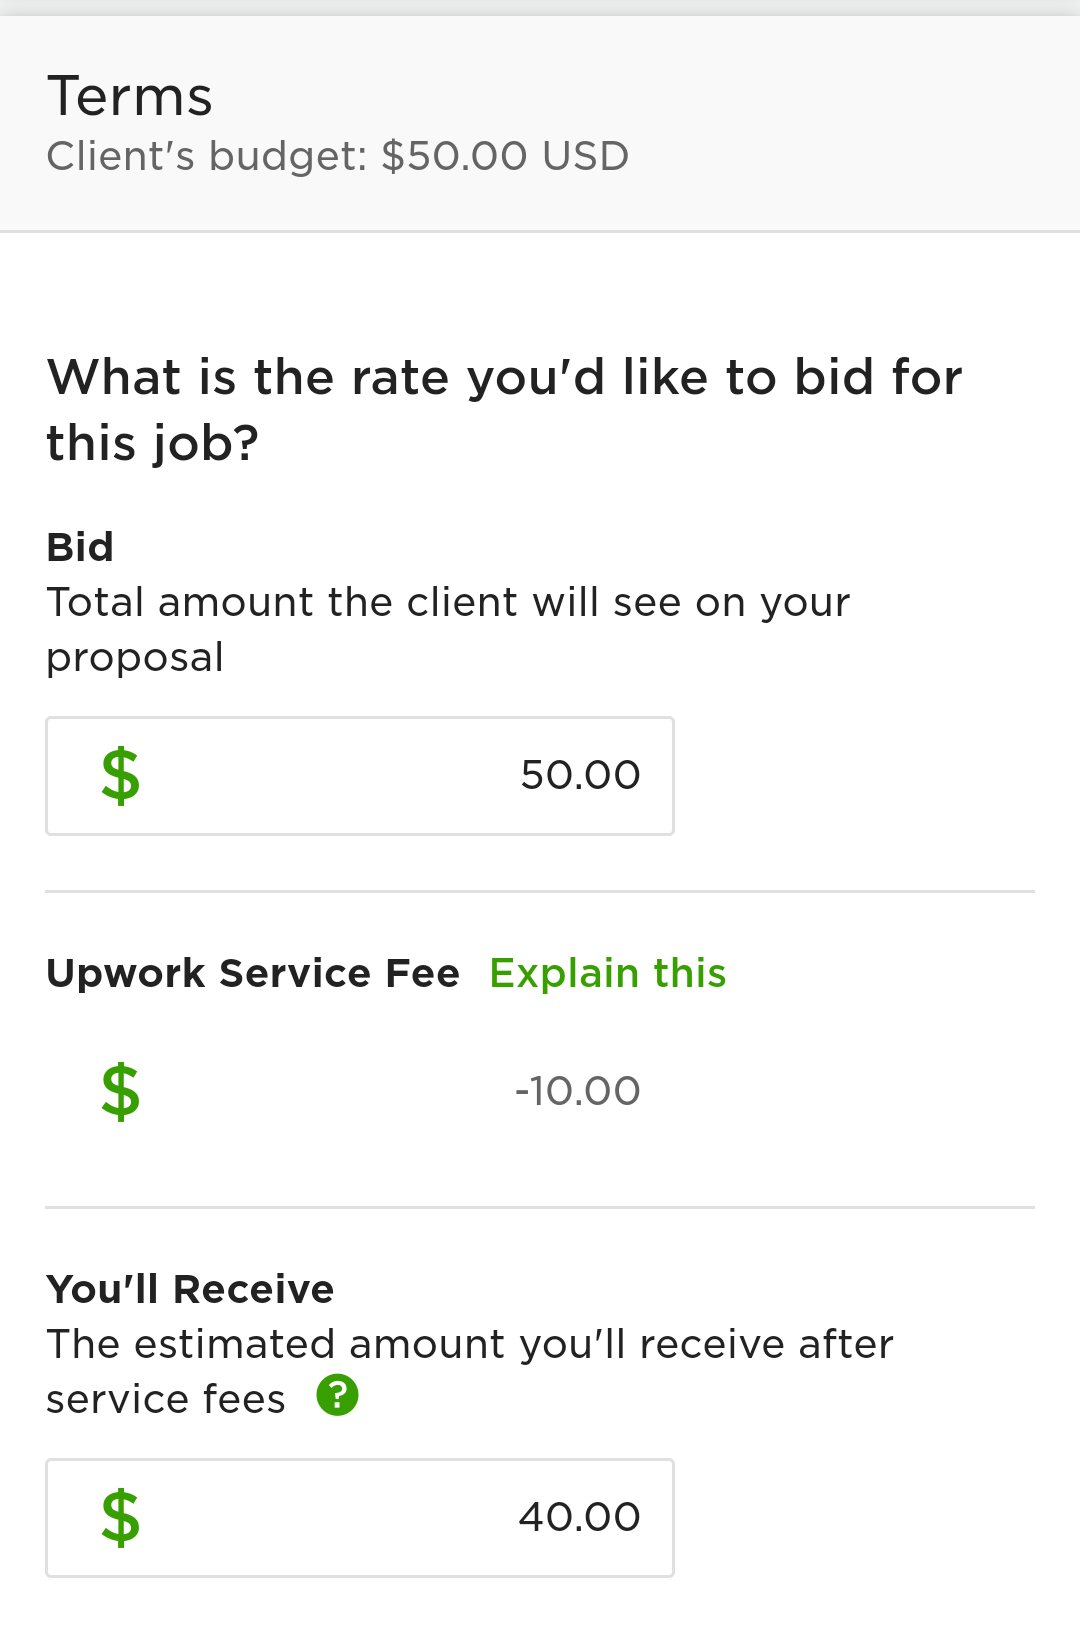 You can bid a different amount than what the client has listed, but I've generally left the bid at the client's rate. I don't want to ask for more because I'm a beginner, and I don't want to ask for less because Upwork jobs are already pretty low-paid.